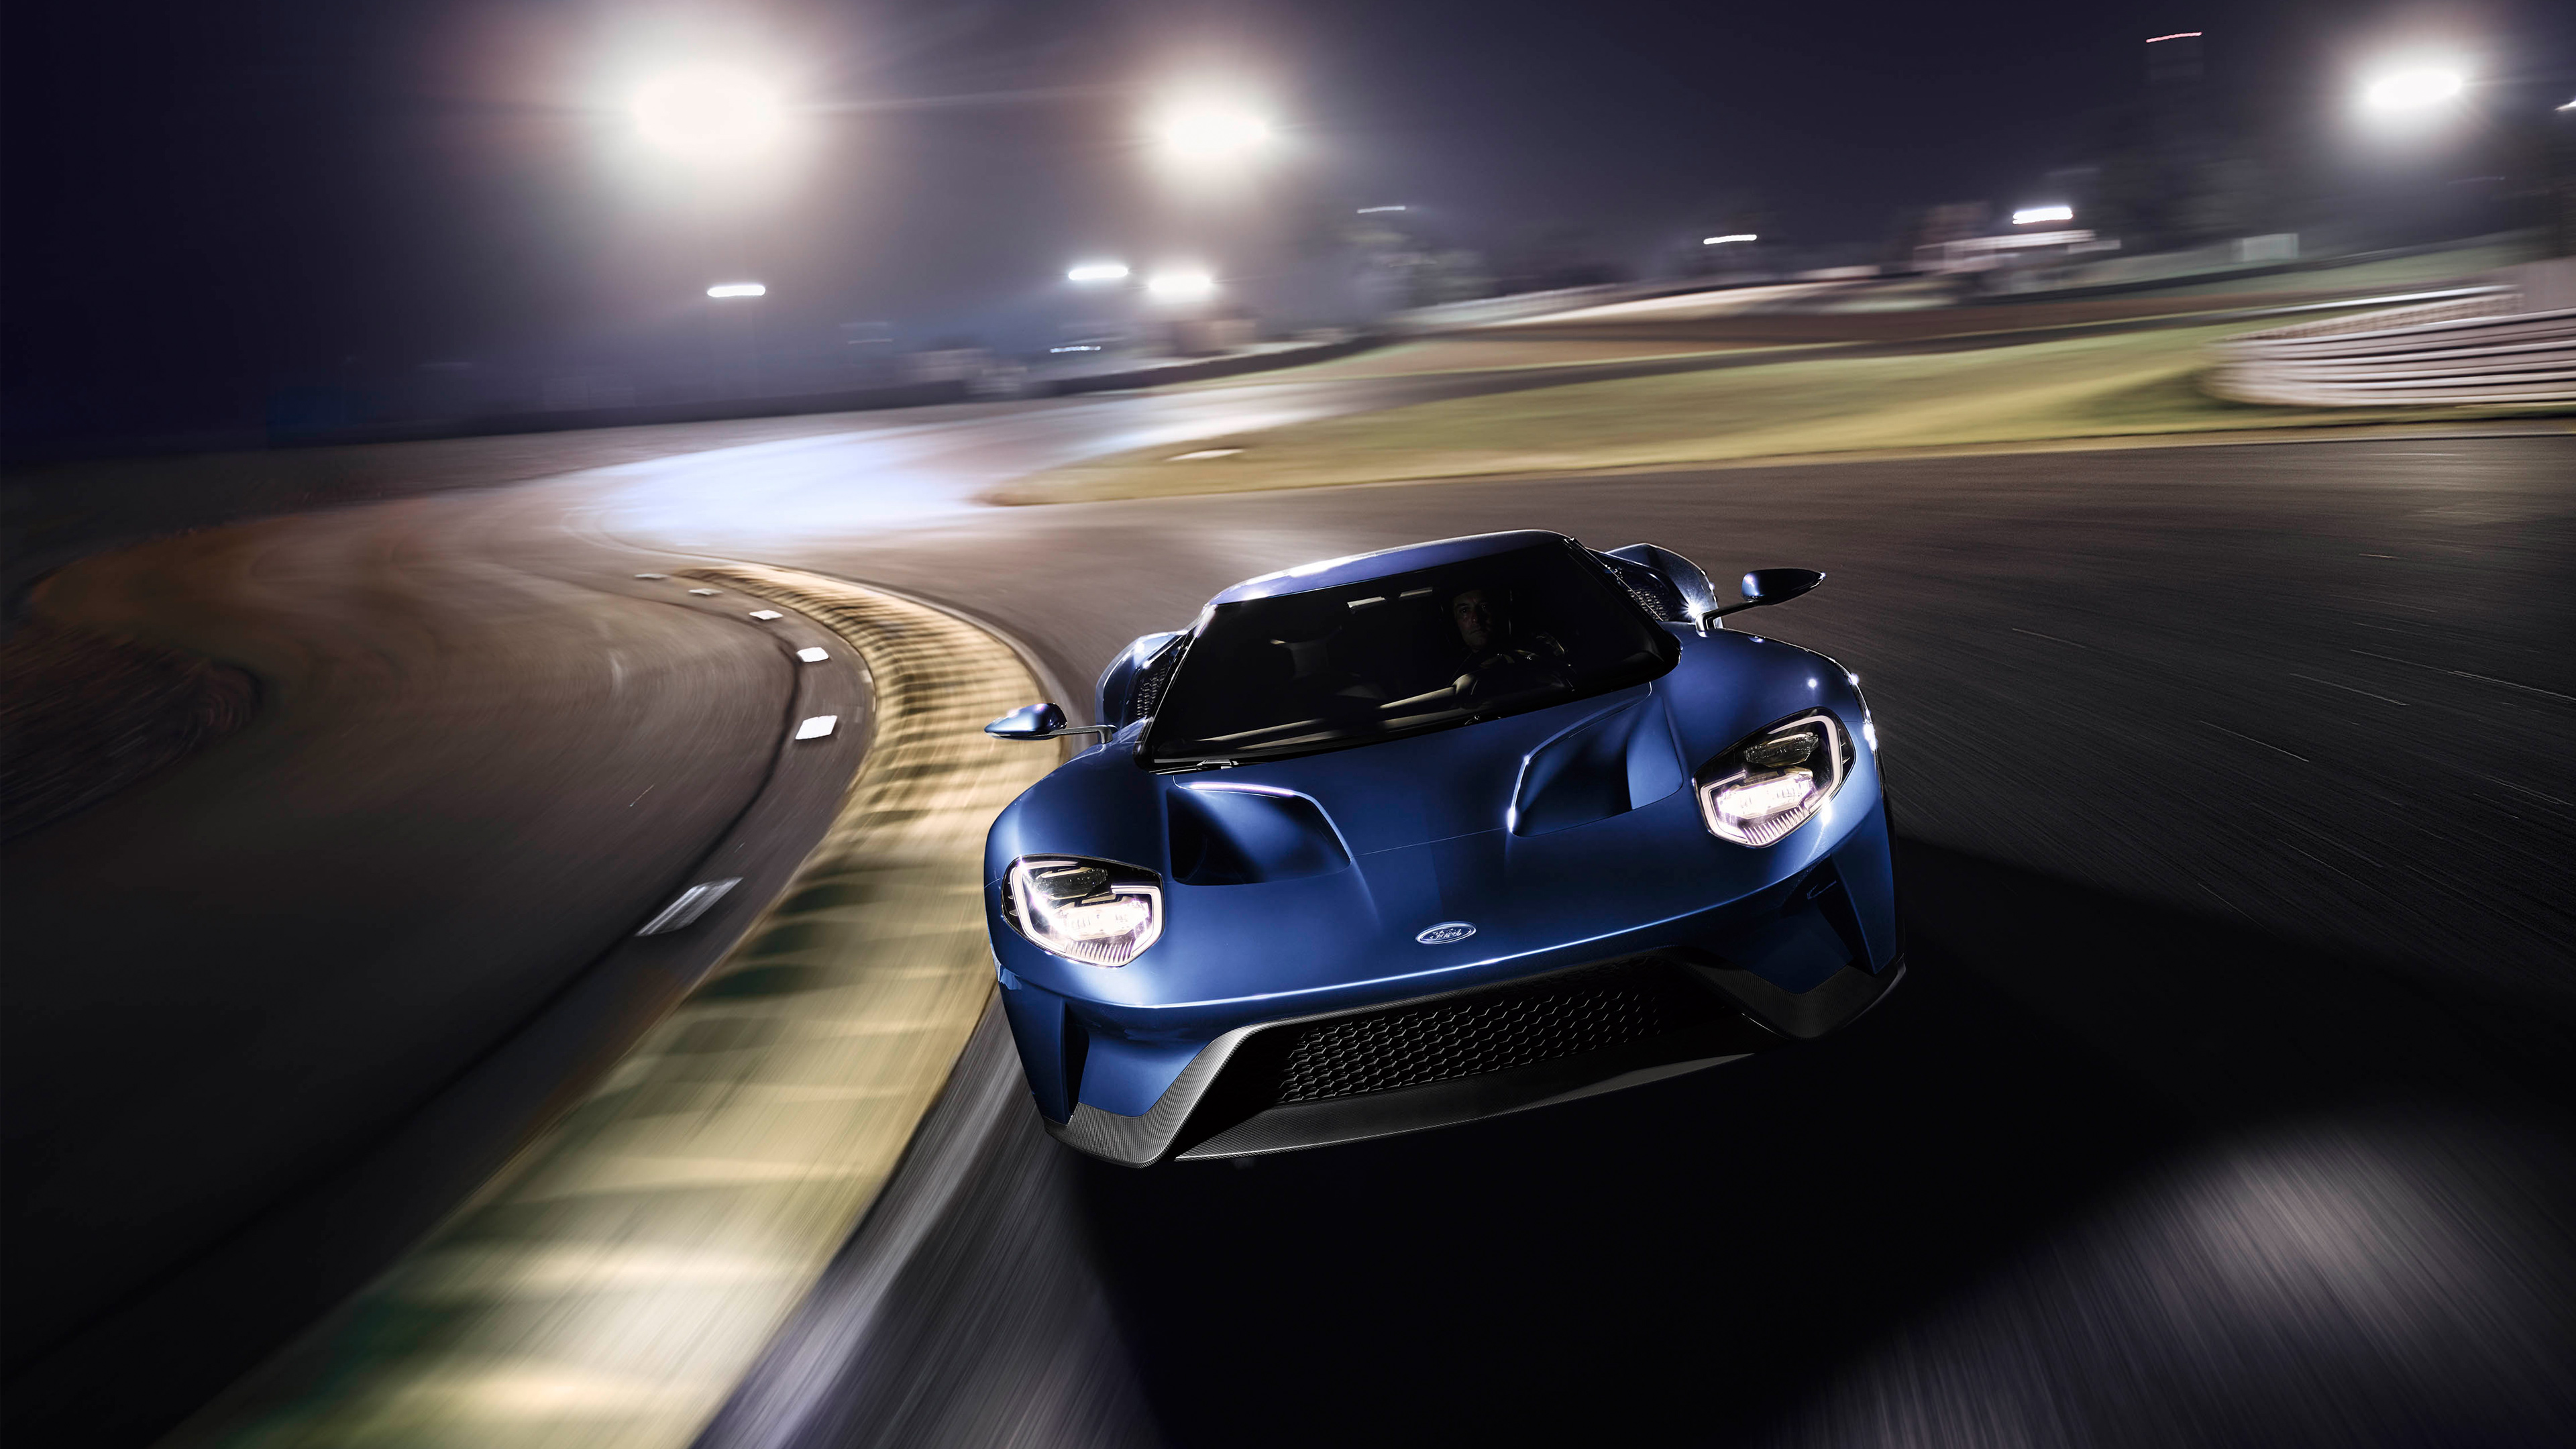 Ford Gt40 High Resolution Wallpapers Images Festival Wallpaper 3840x2160